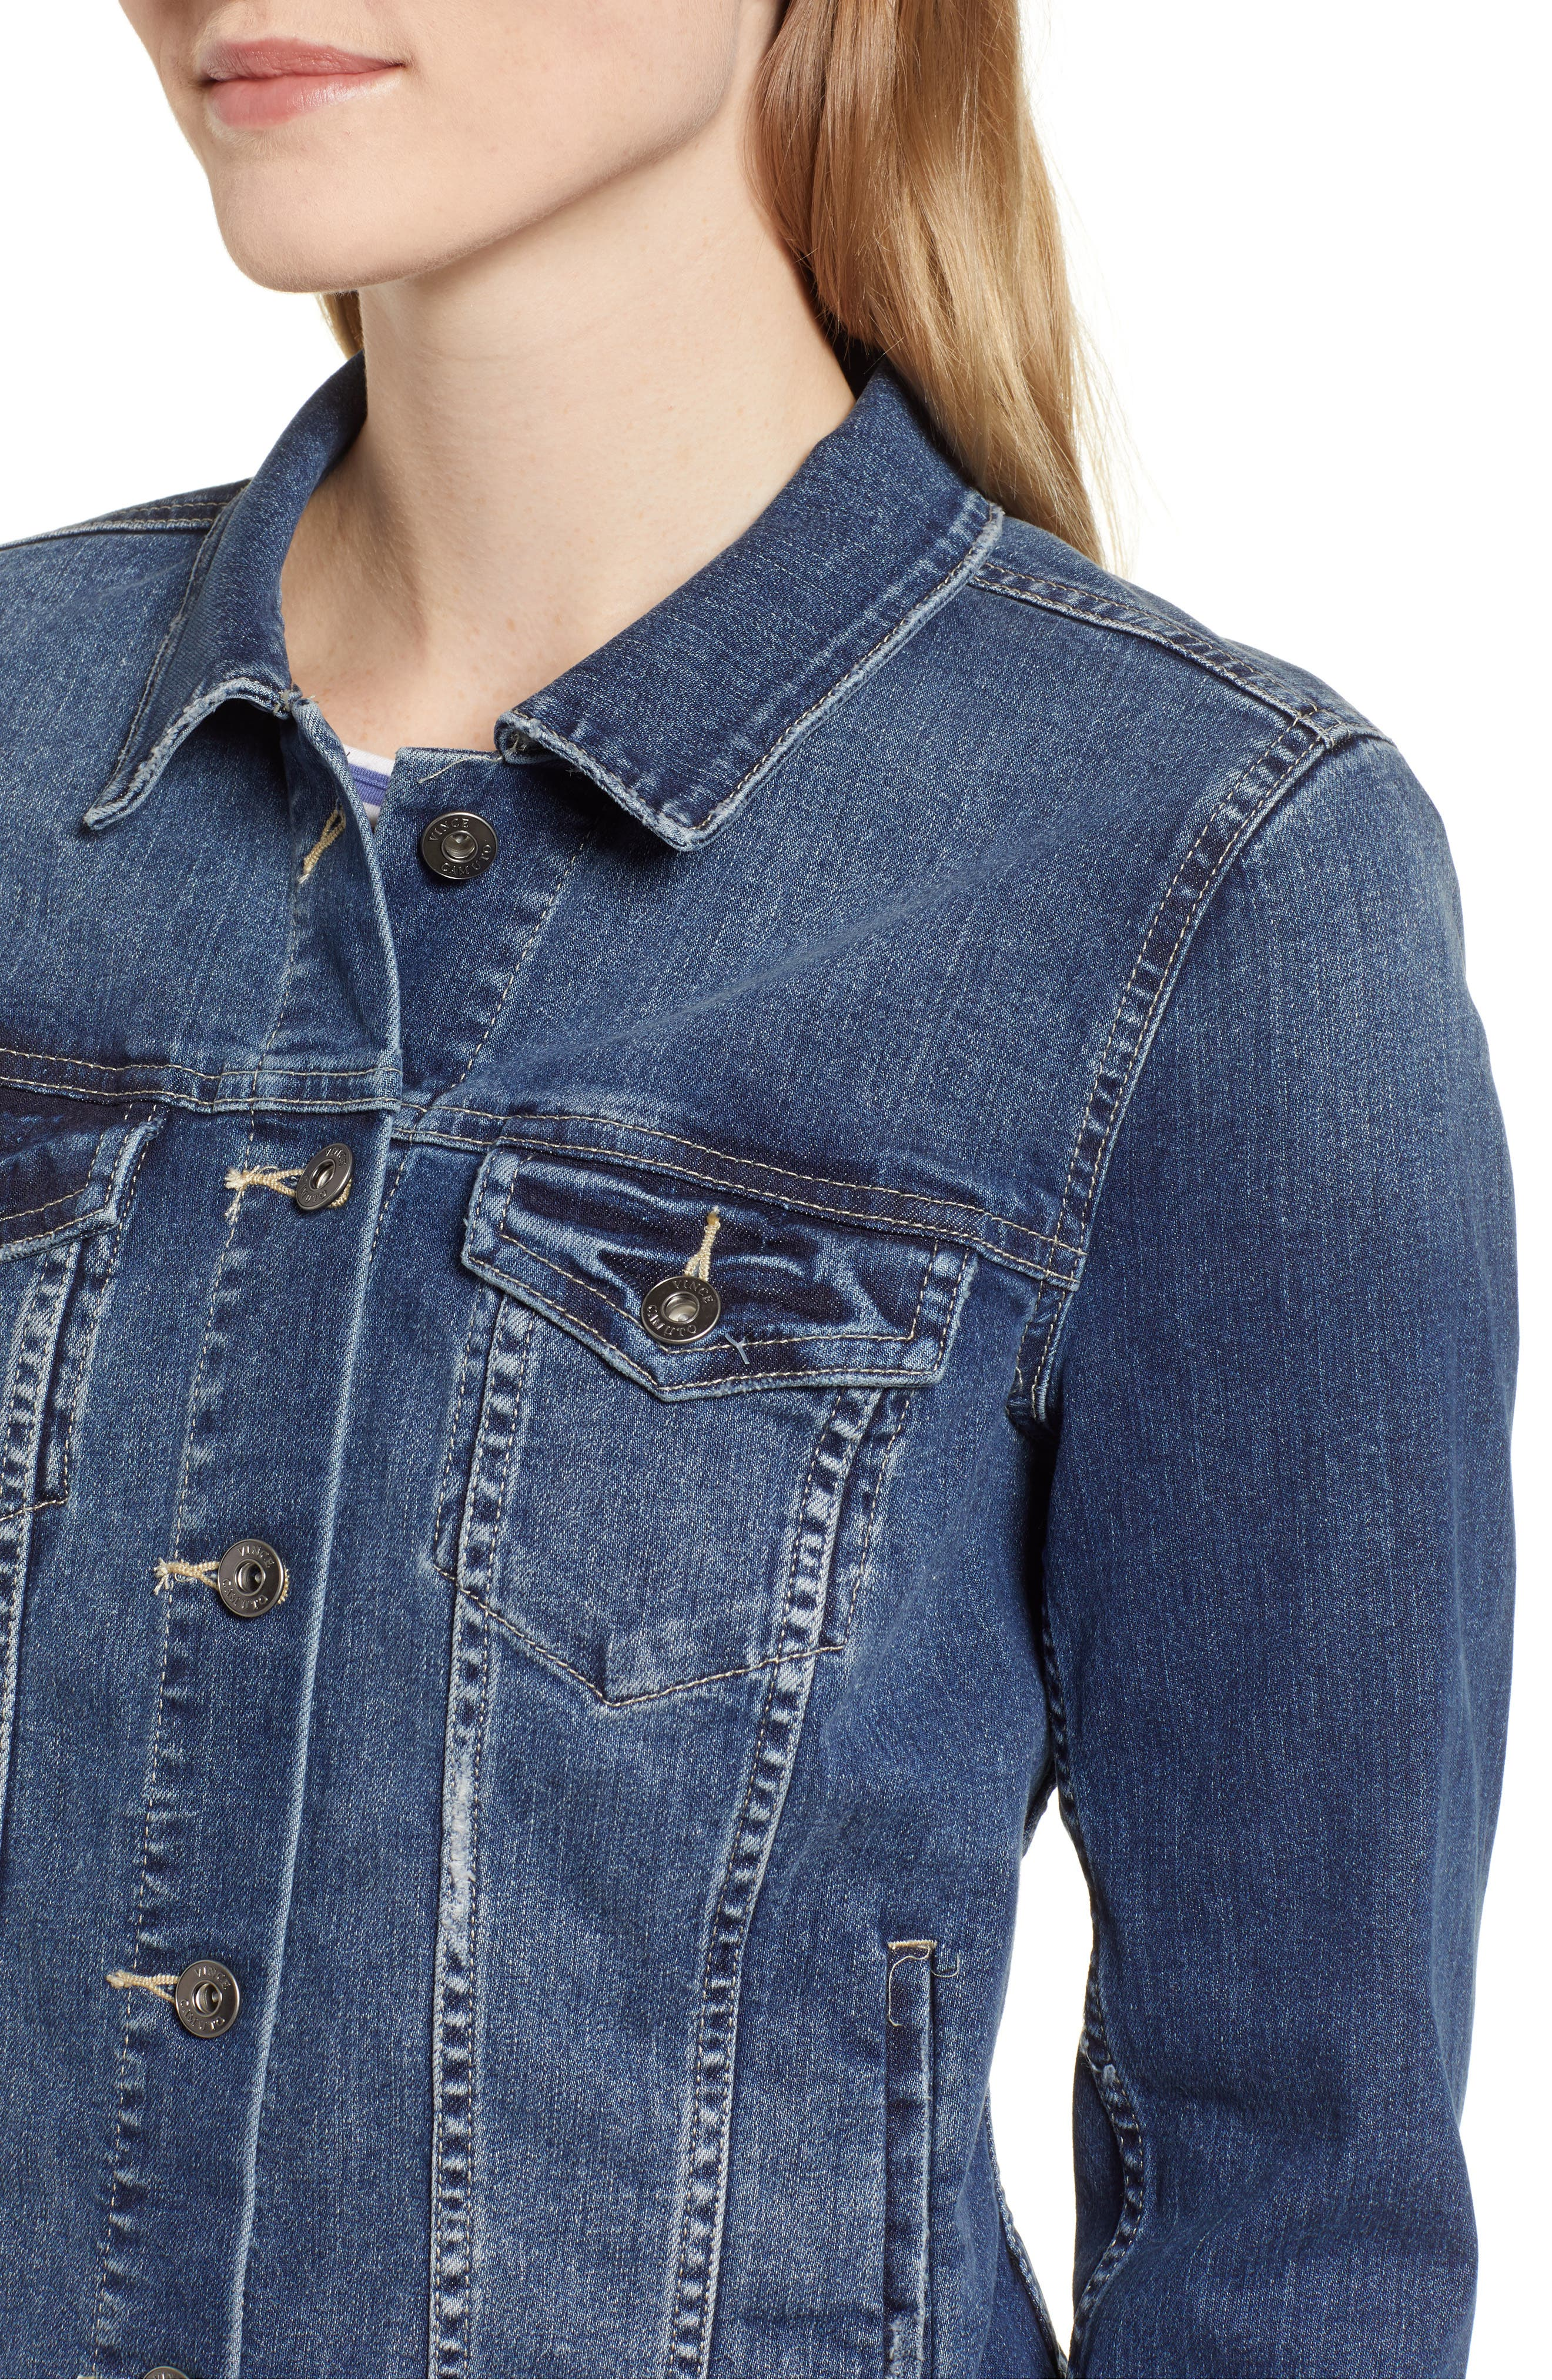 VINCE CAMUTO, Two by Vince Camuto Jean Jacket, Alternate thumbnail 6, color, AUTHENTIC